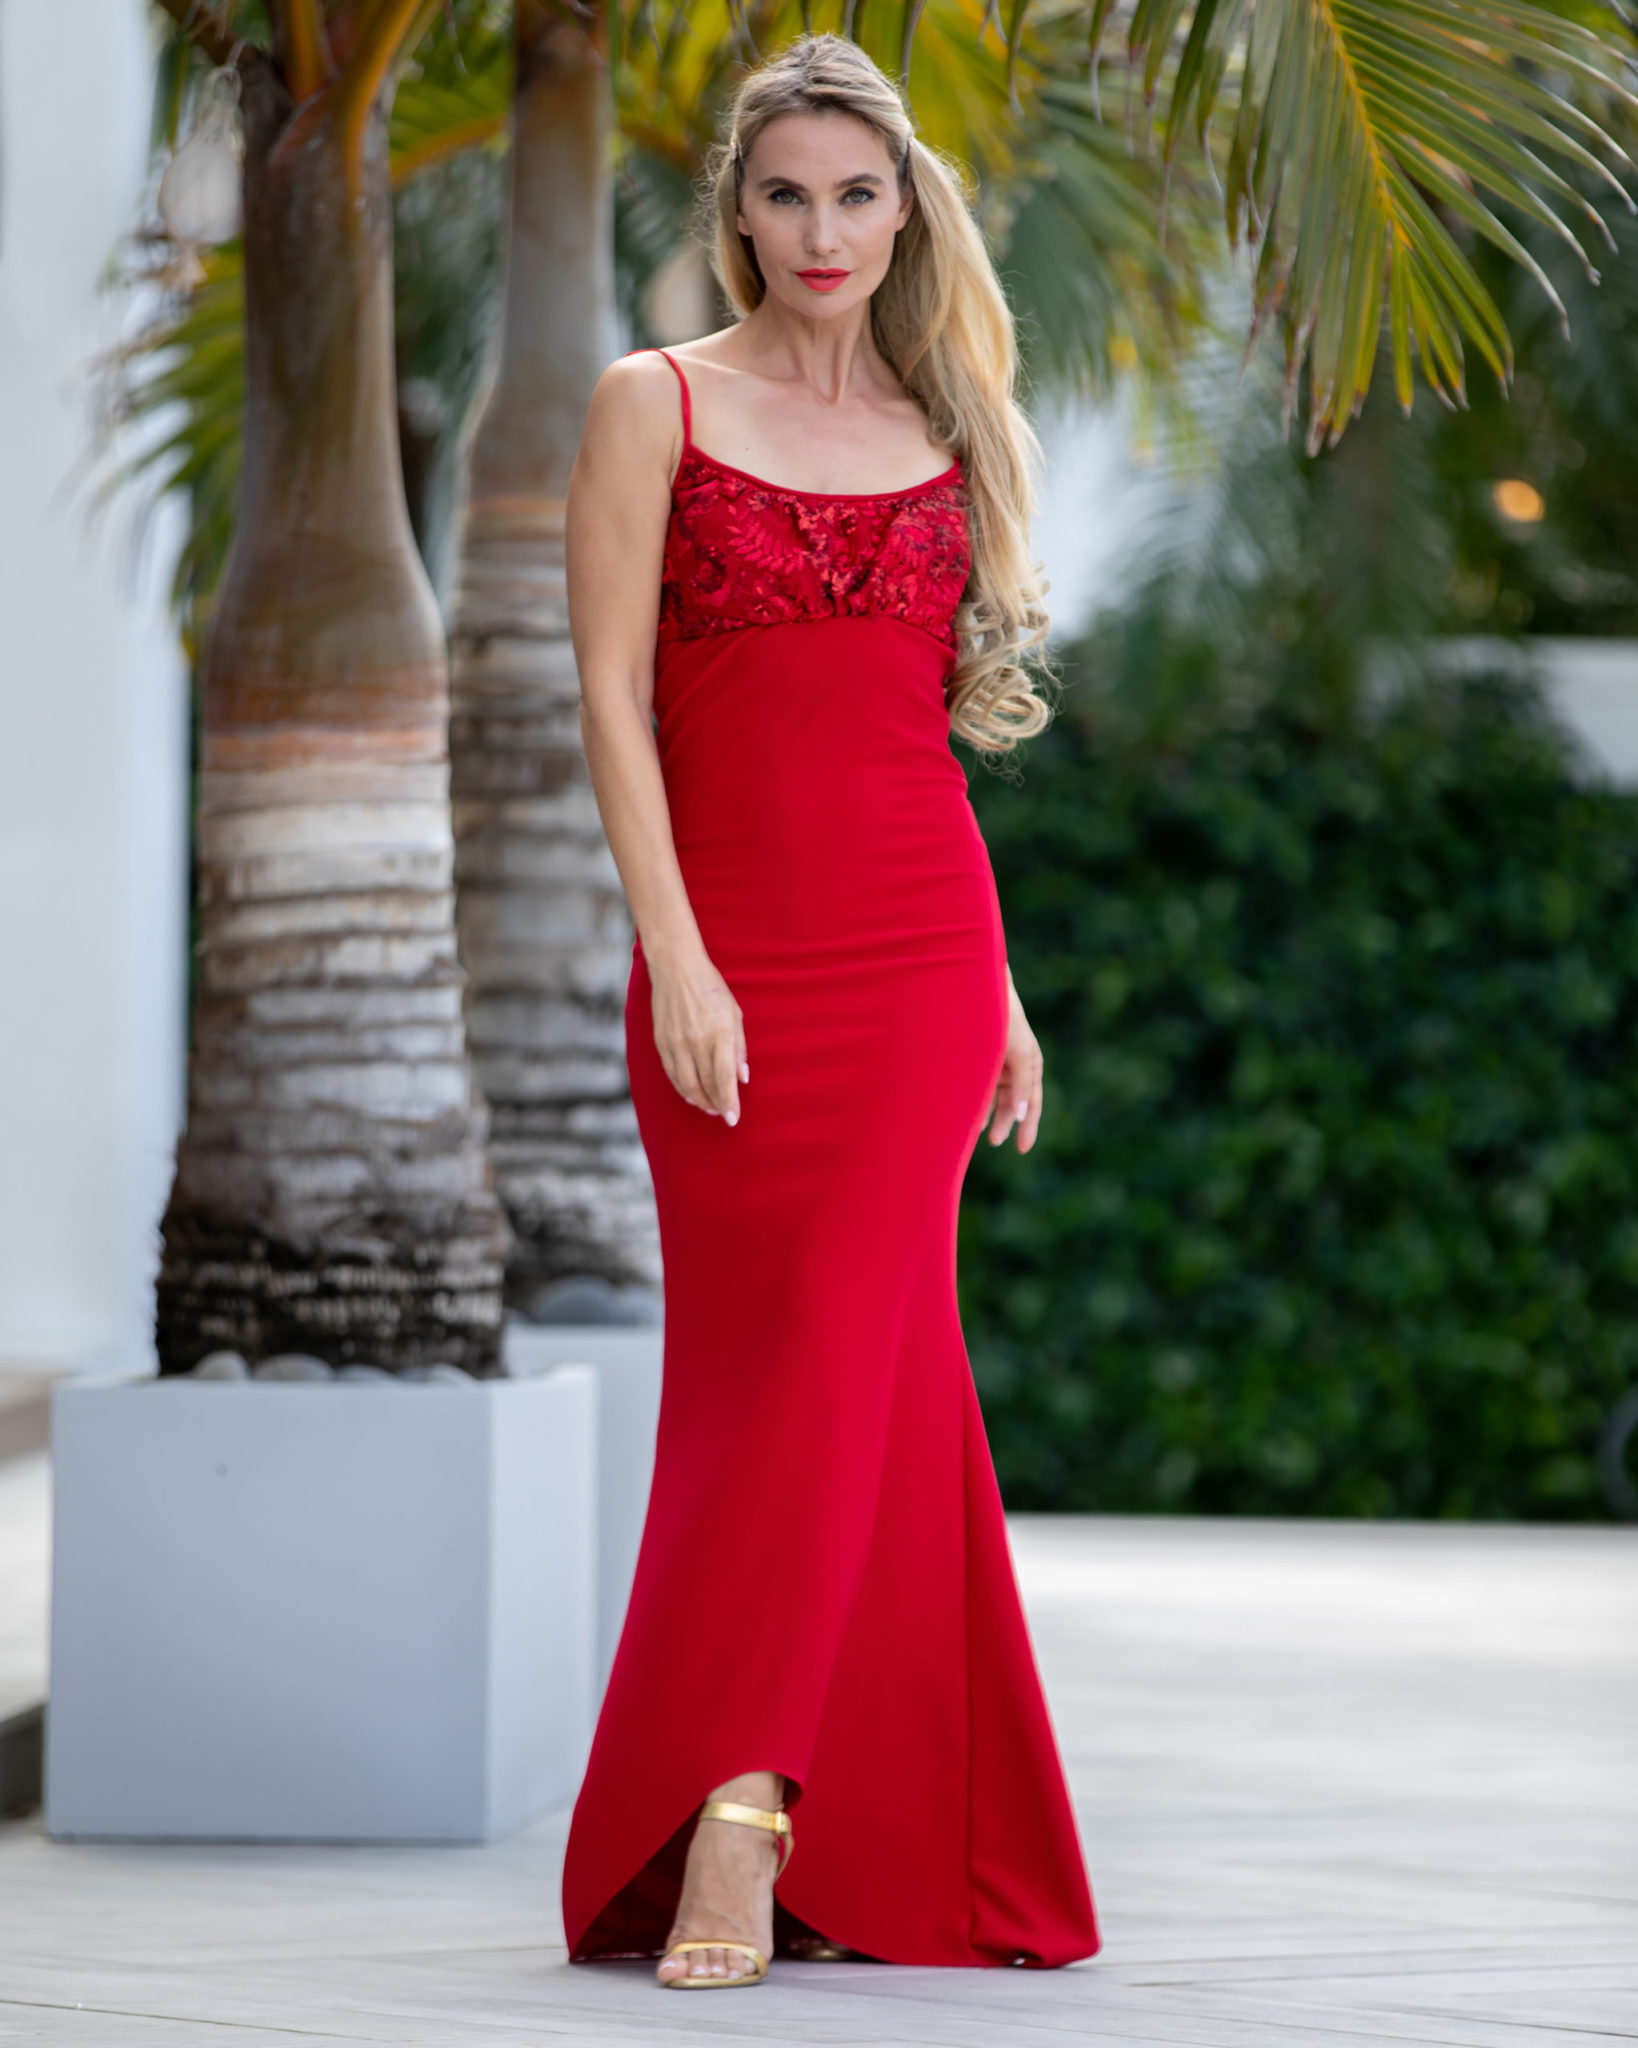 Red hot: A semi high-low dress, with a deep cut in the back, this classic piece in semi-stretch material oozes glamour while providing comfort; the front cut is made with beaded Chantilly fabric flower details. (Model: Victoria Liub)